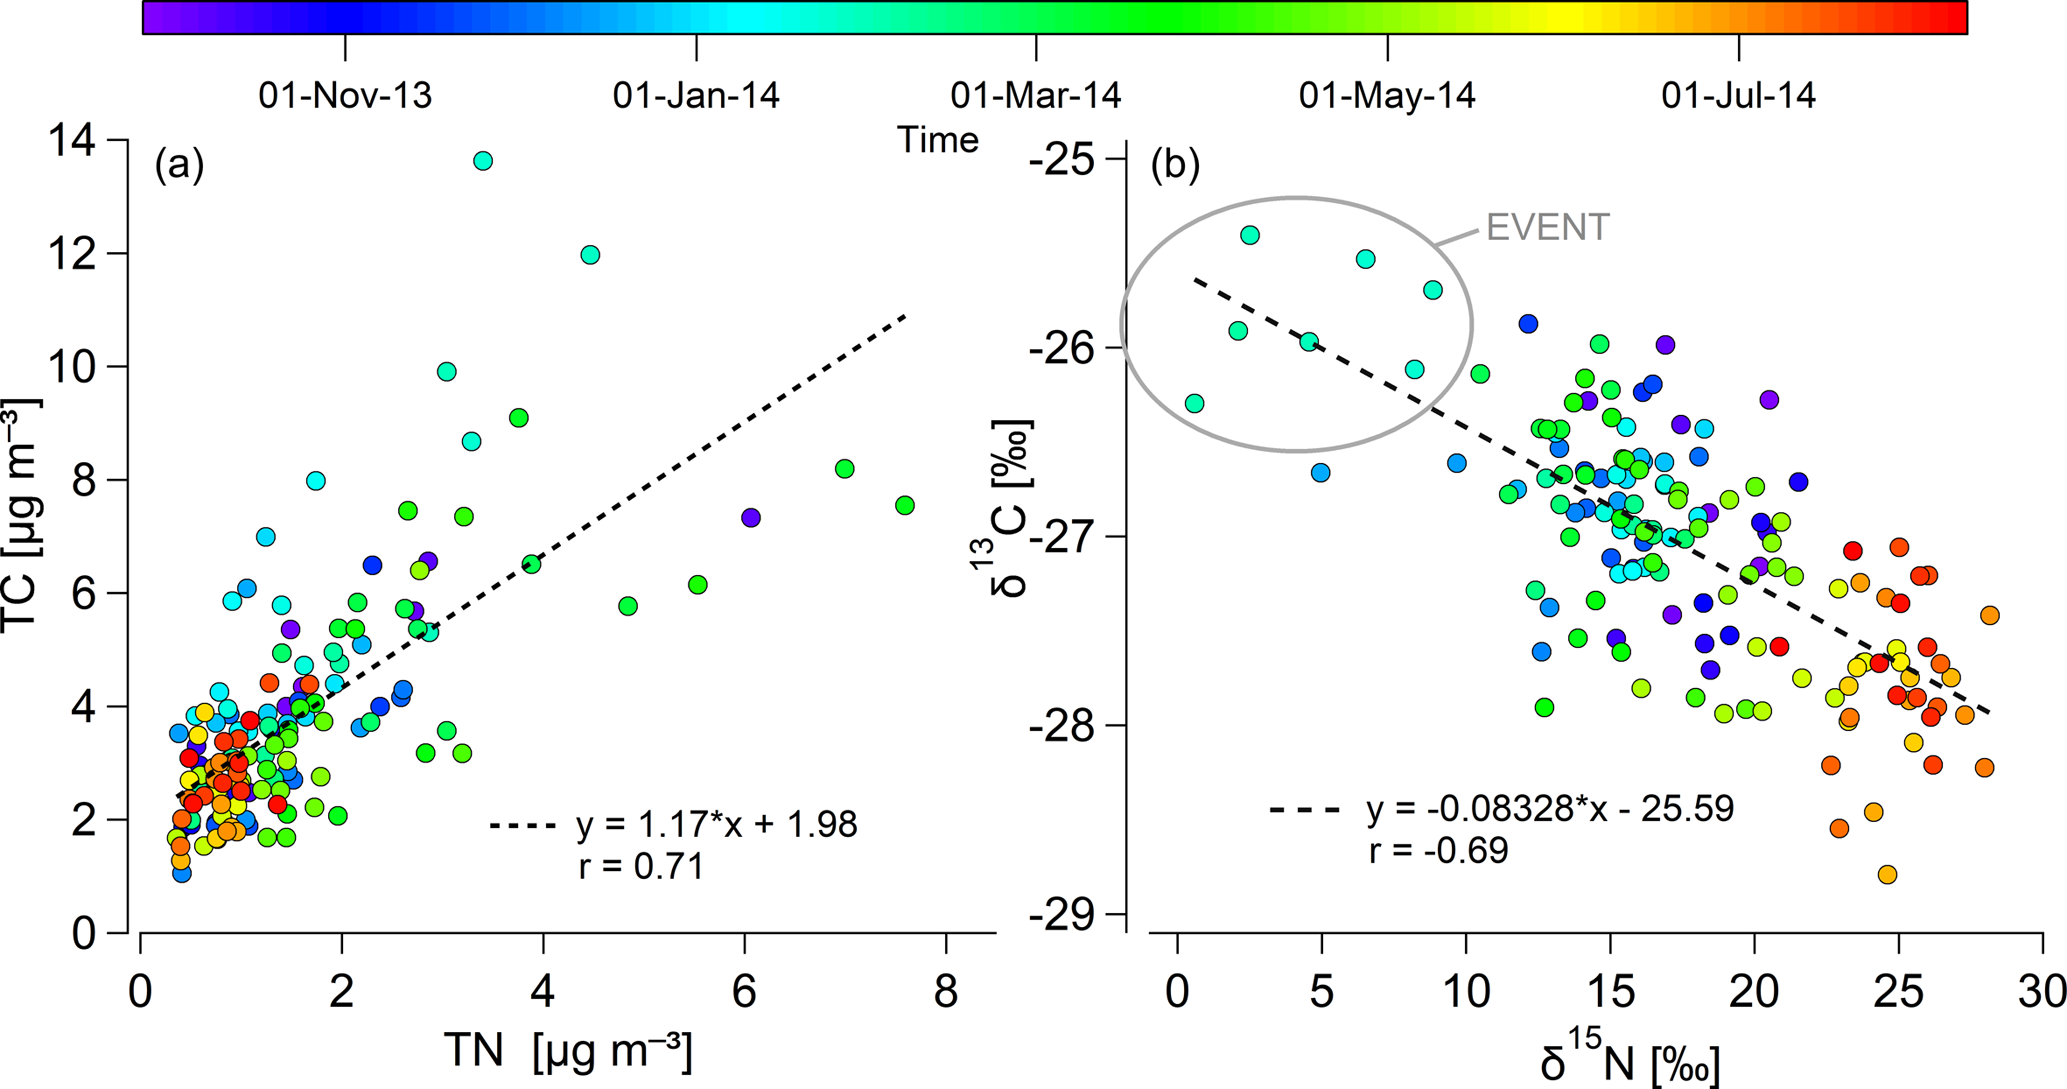 ACP - Seasonal study of stable carbon and nitrogen isotopic